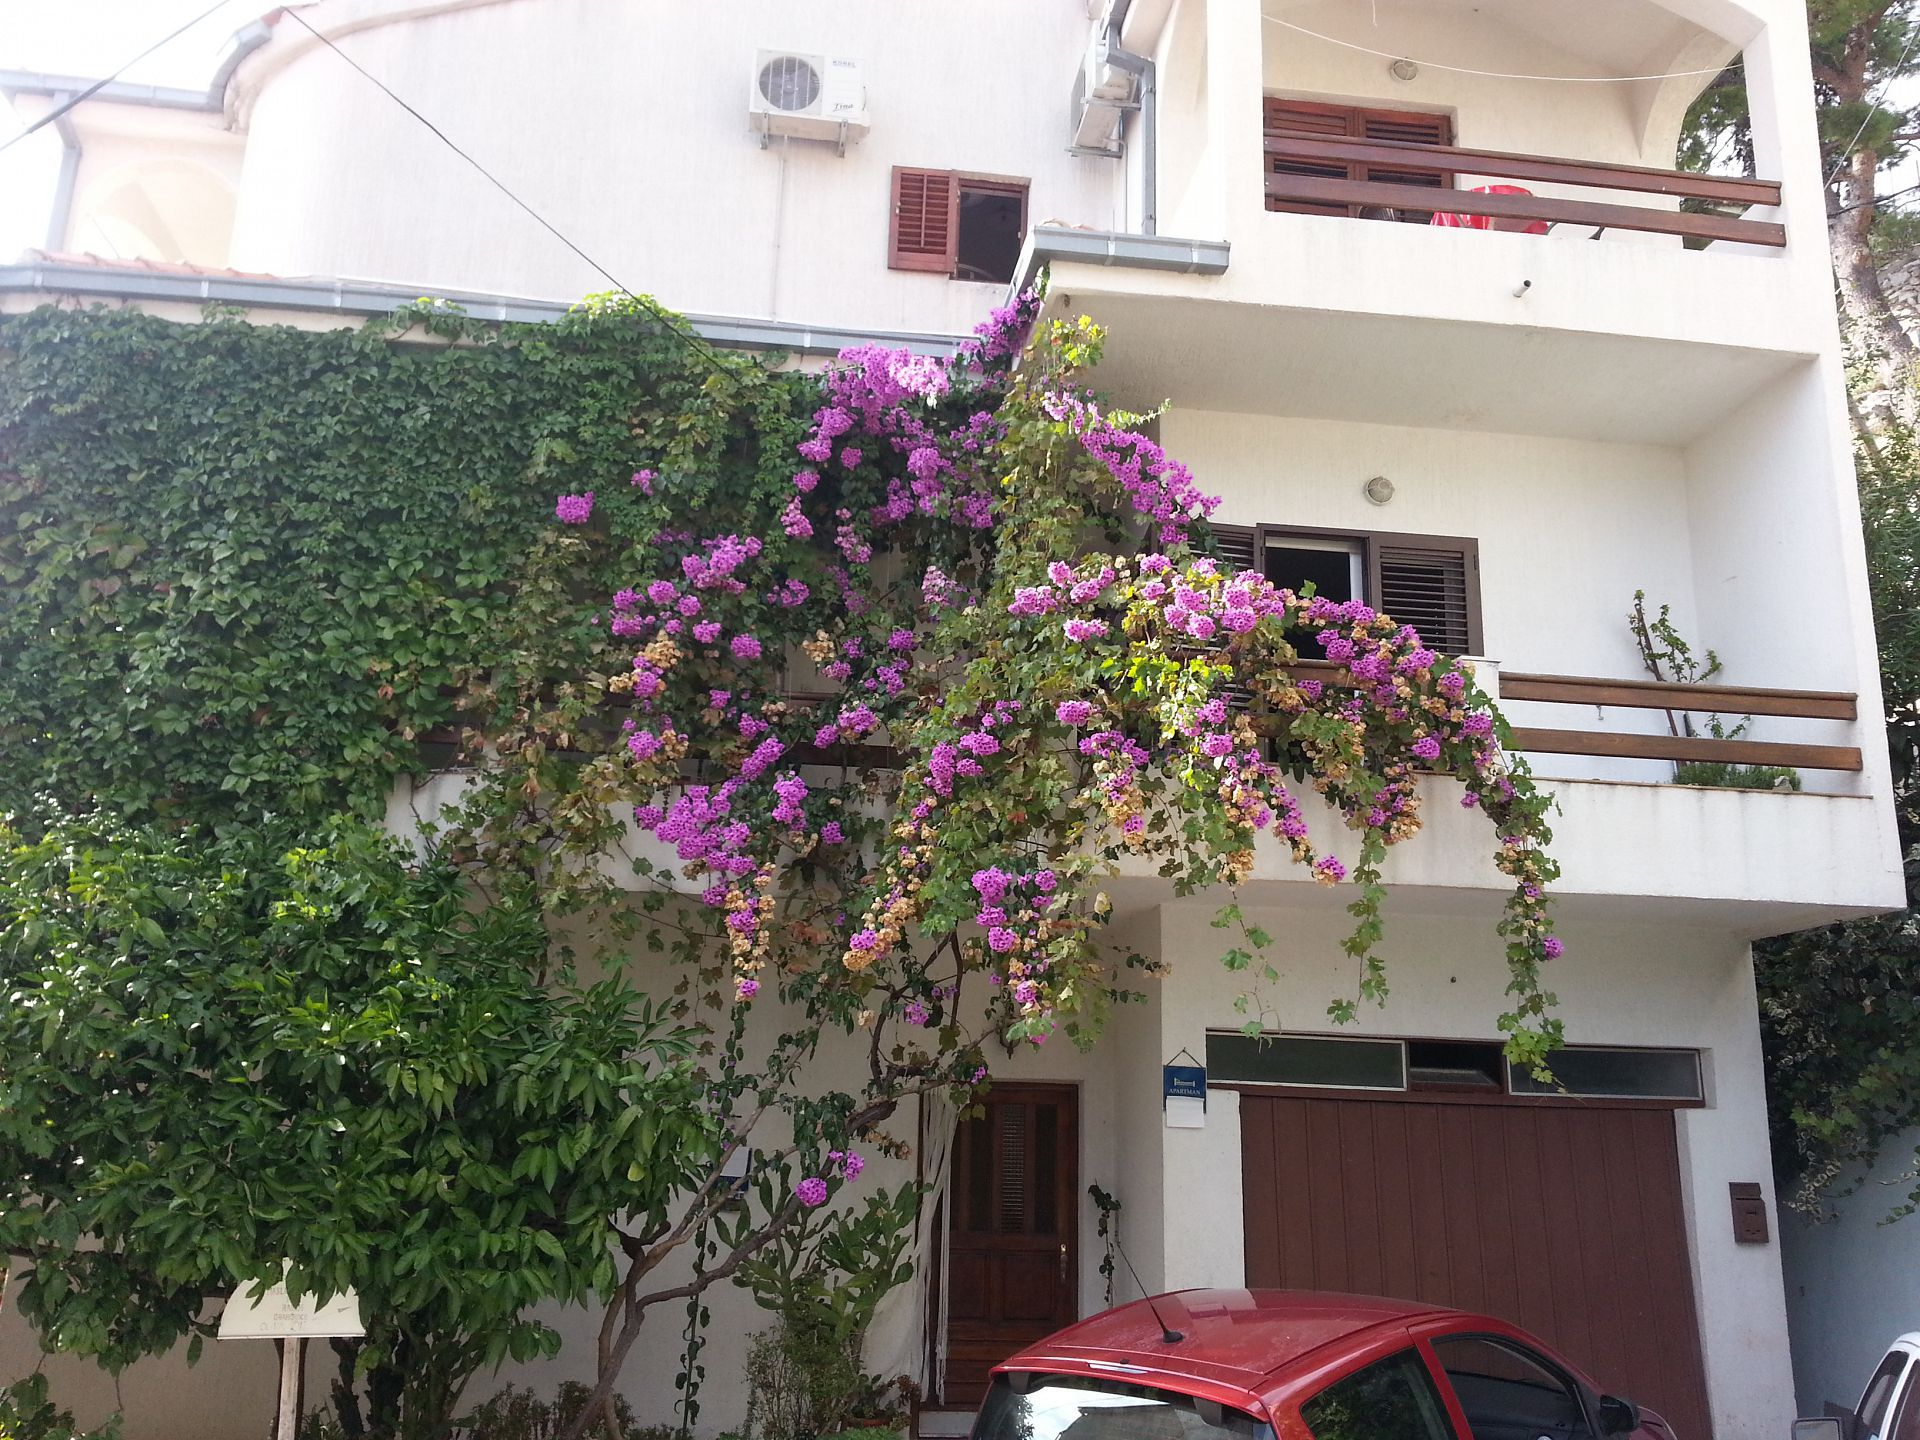 Zvone - Sumpetar - Apartments Croatia